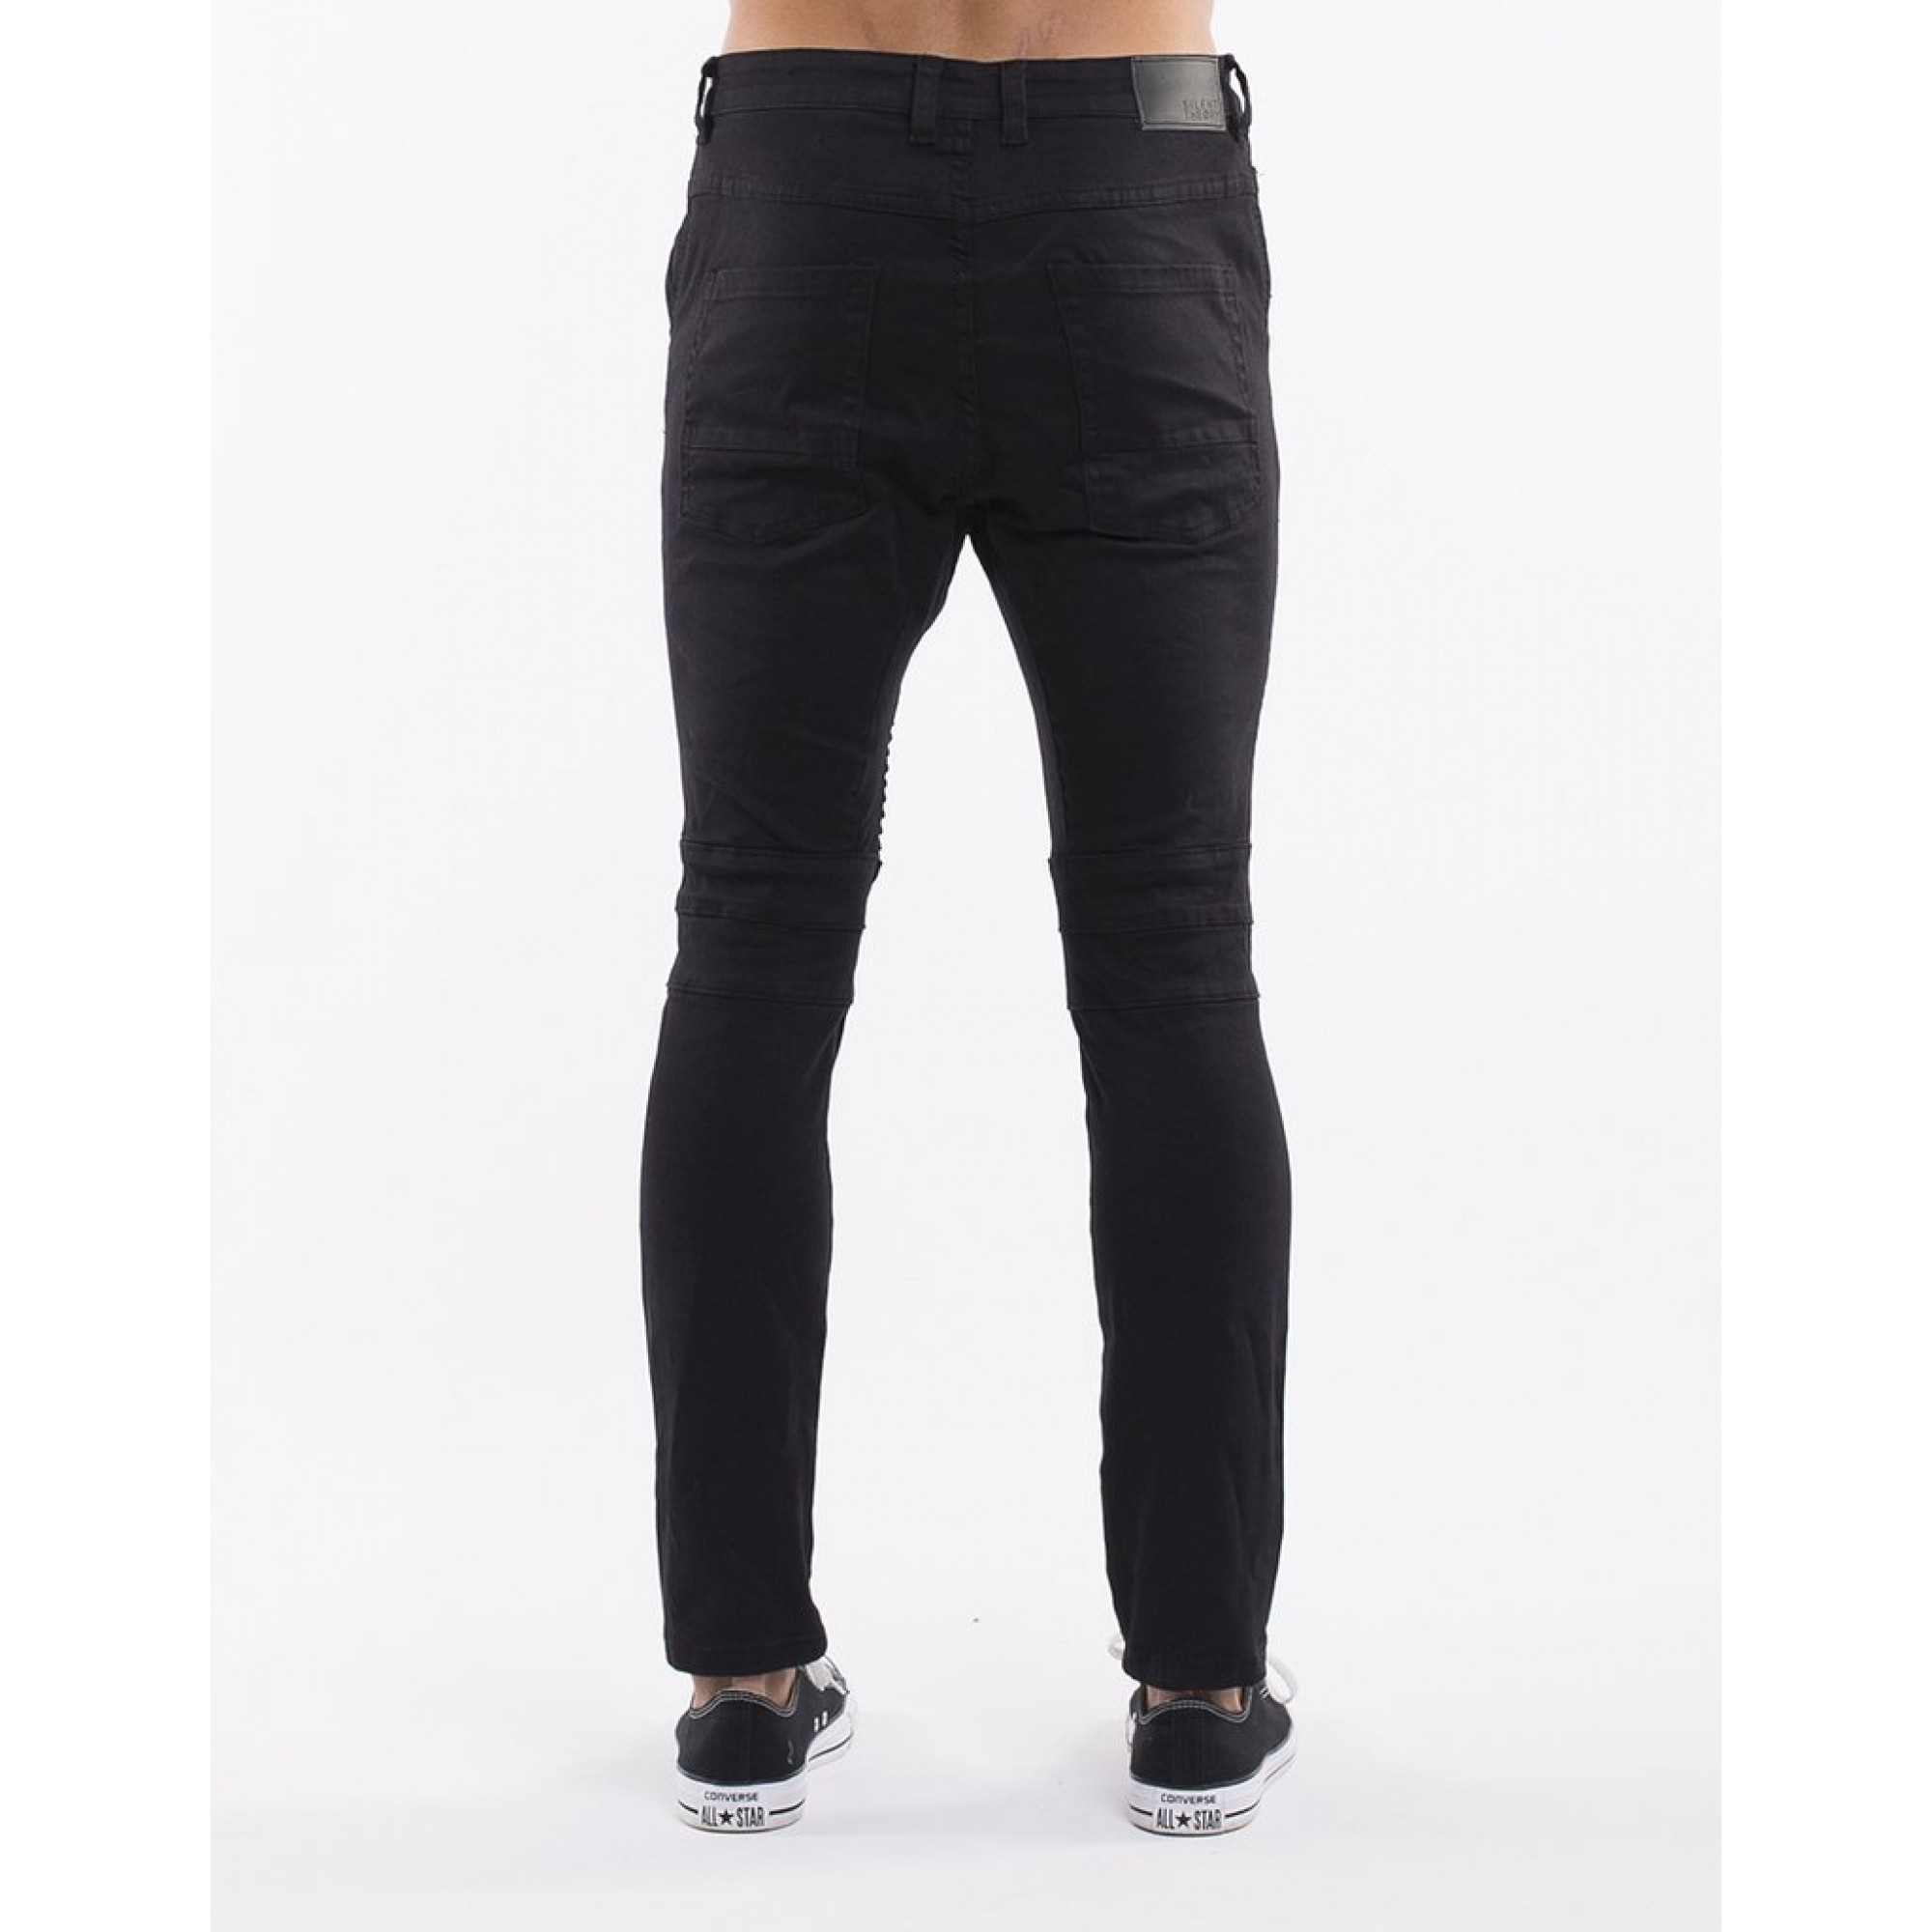 ca4c2c67cfd Venue Store SILENT THEORY Outlaw Mens Pant - Wrecked Black Free Delivery  Over $100